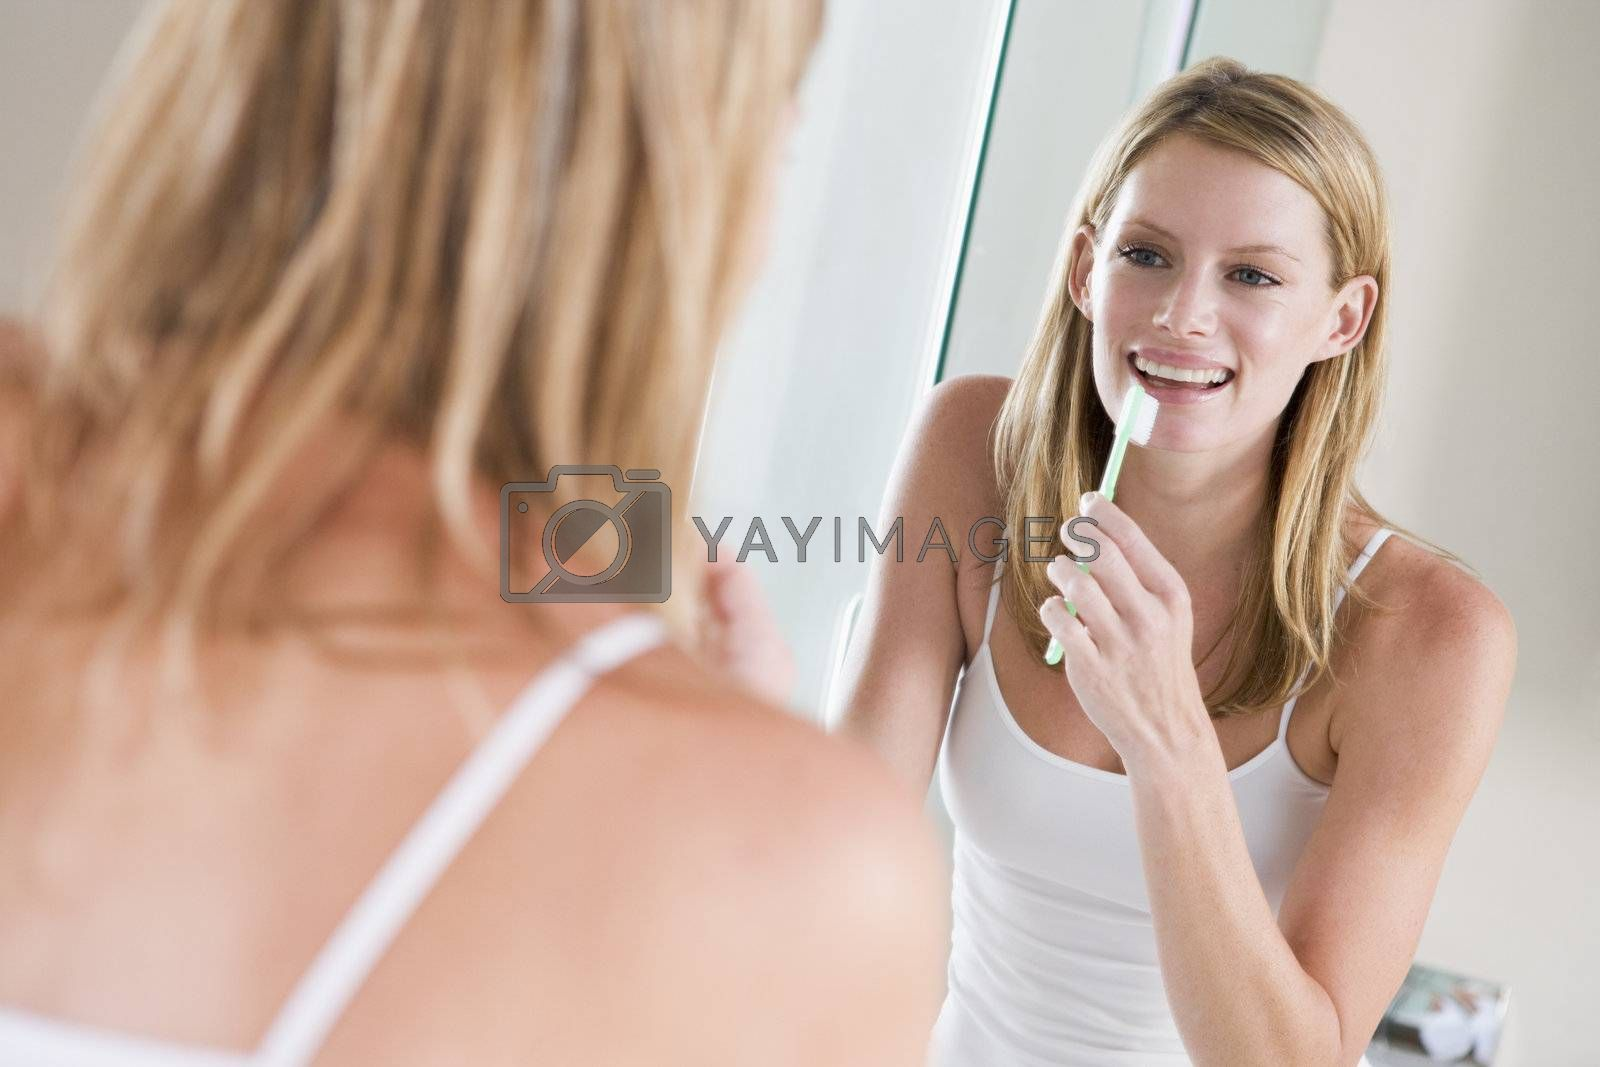 Woman in bathroom brushing teeth smiling